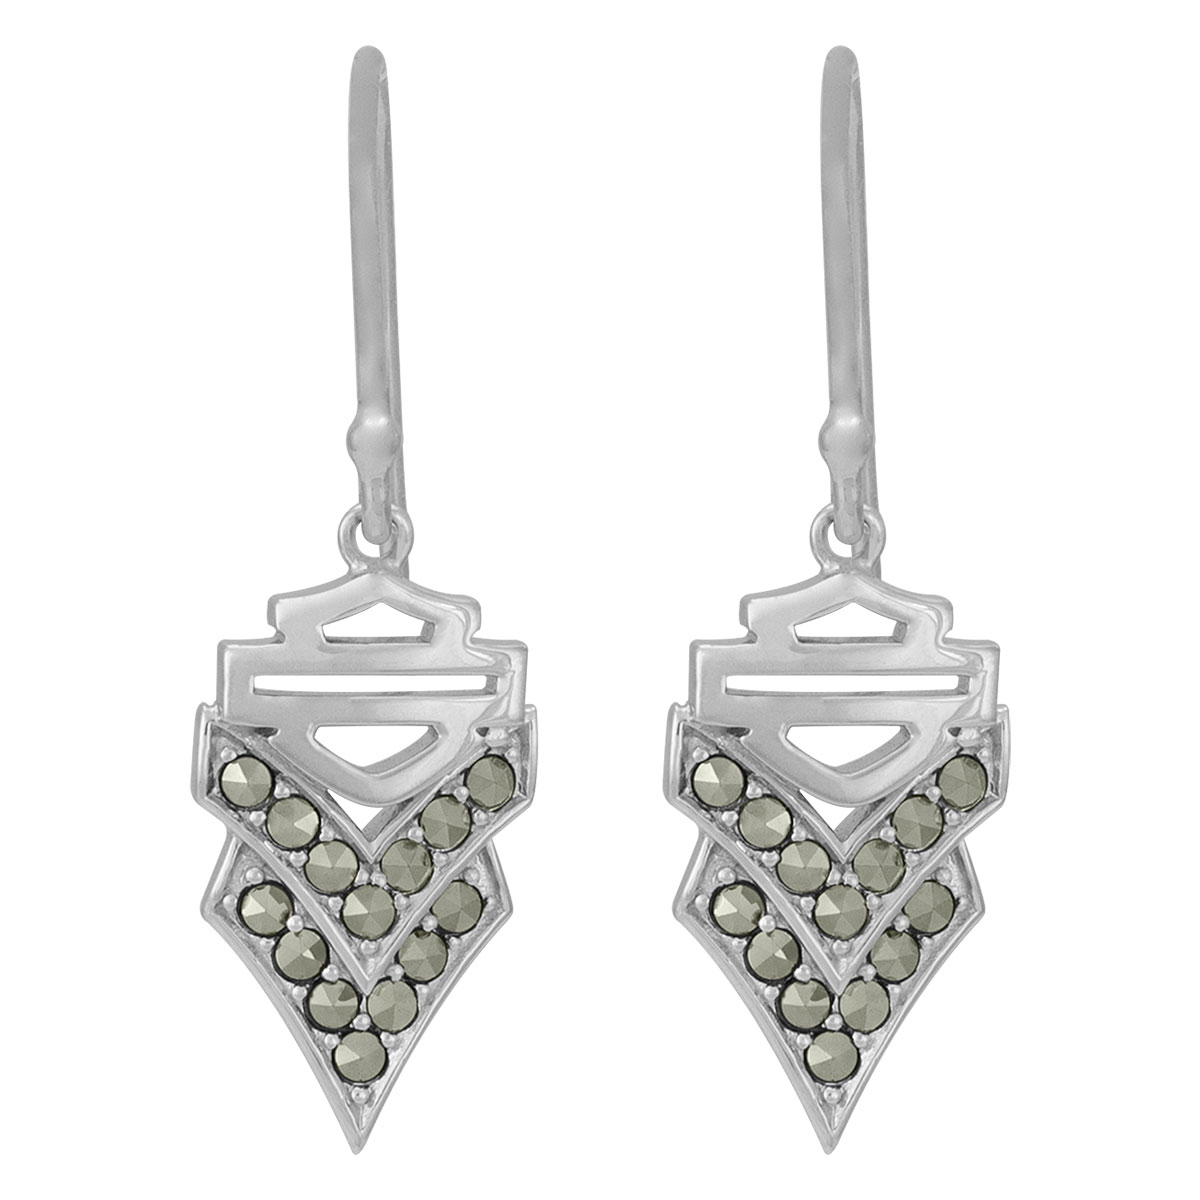 Detroit Silver Chevron Crest Earrings on Silver Ear Wires Mod and Trendy Geometric Chic